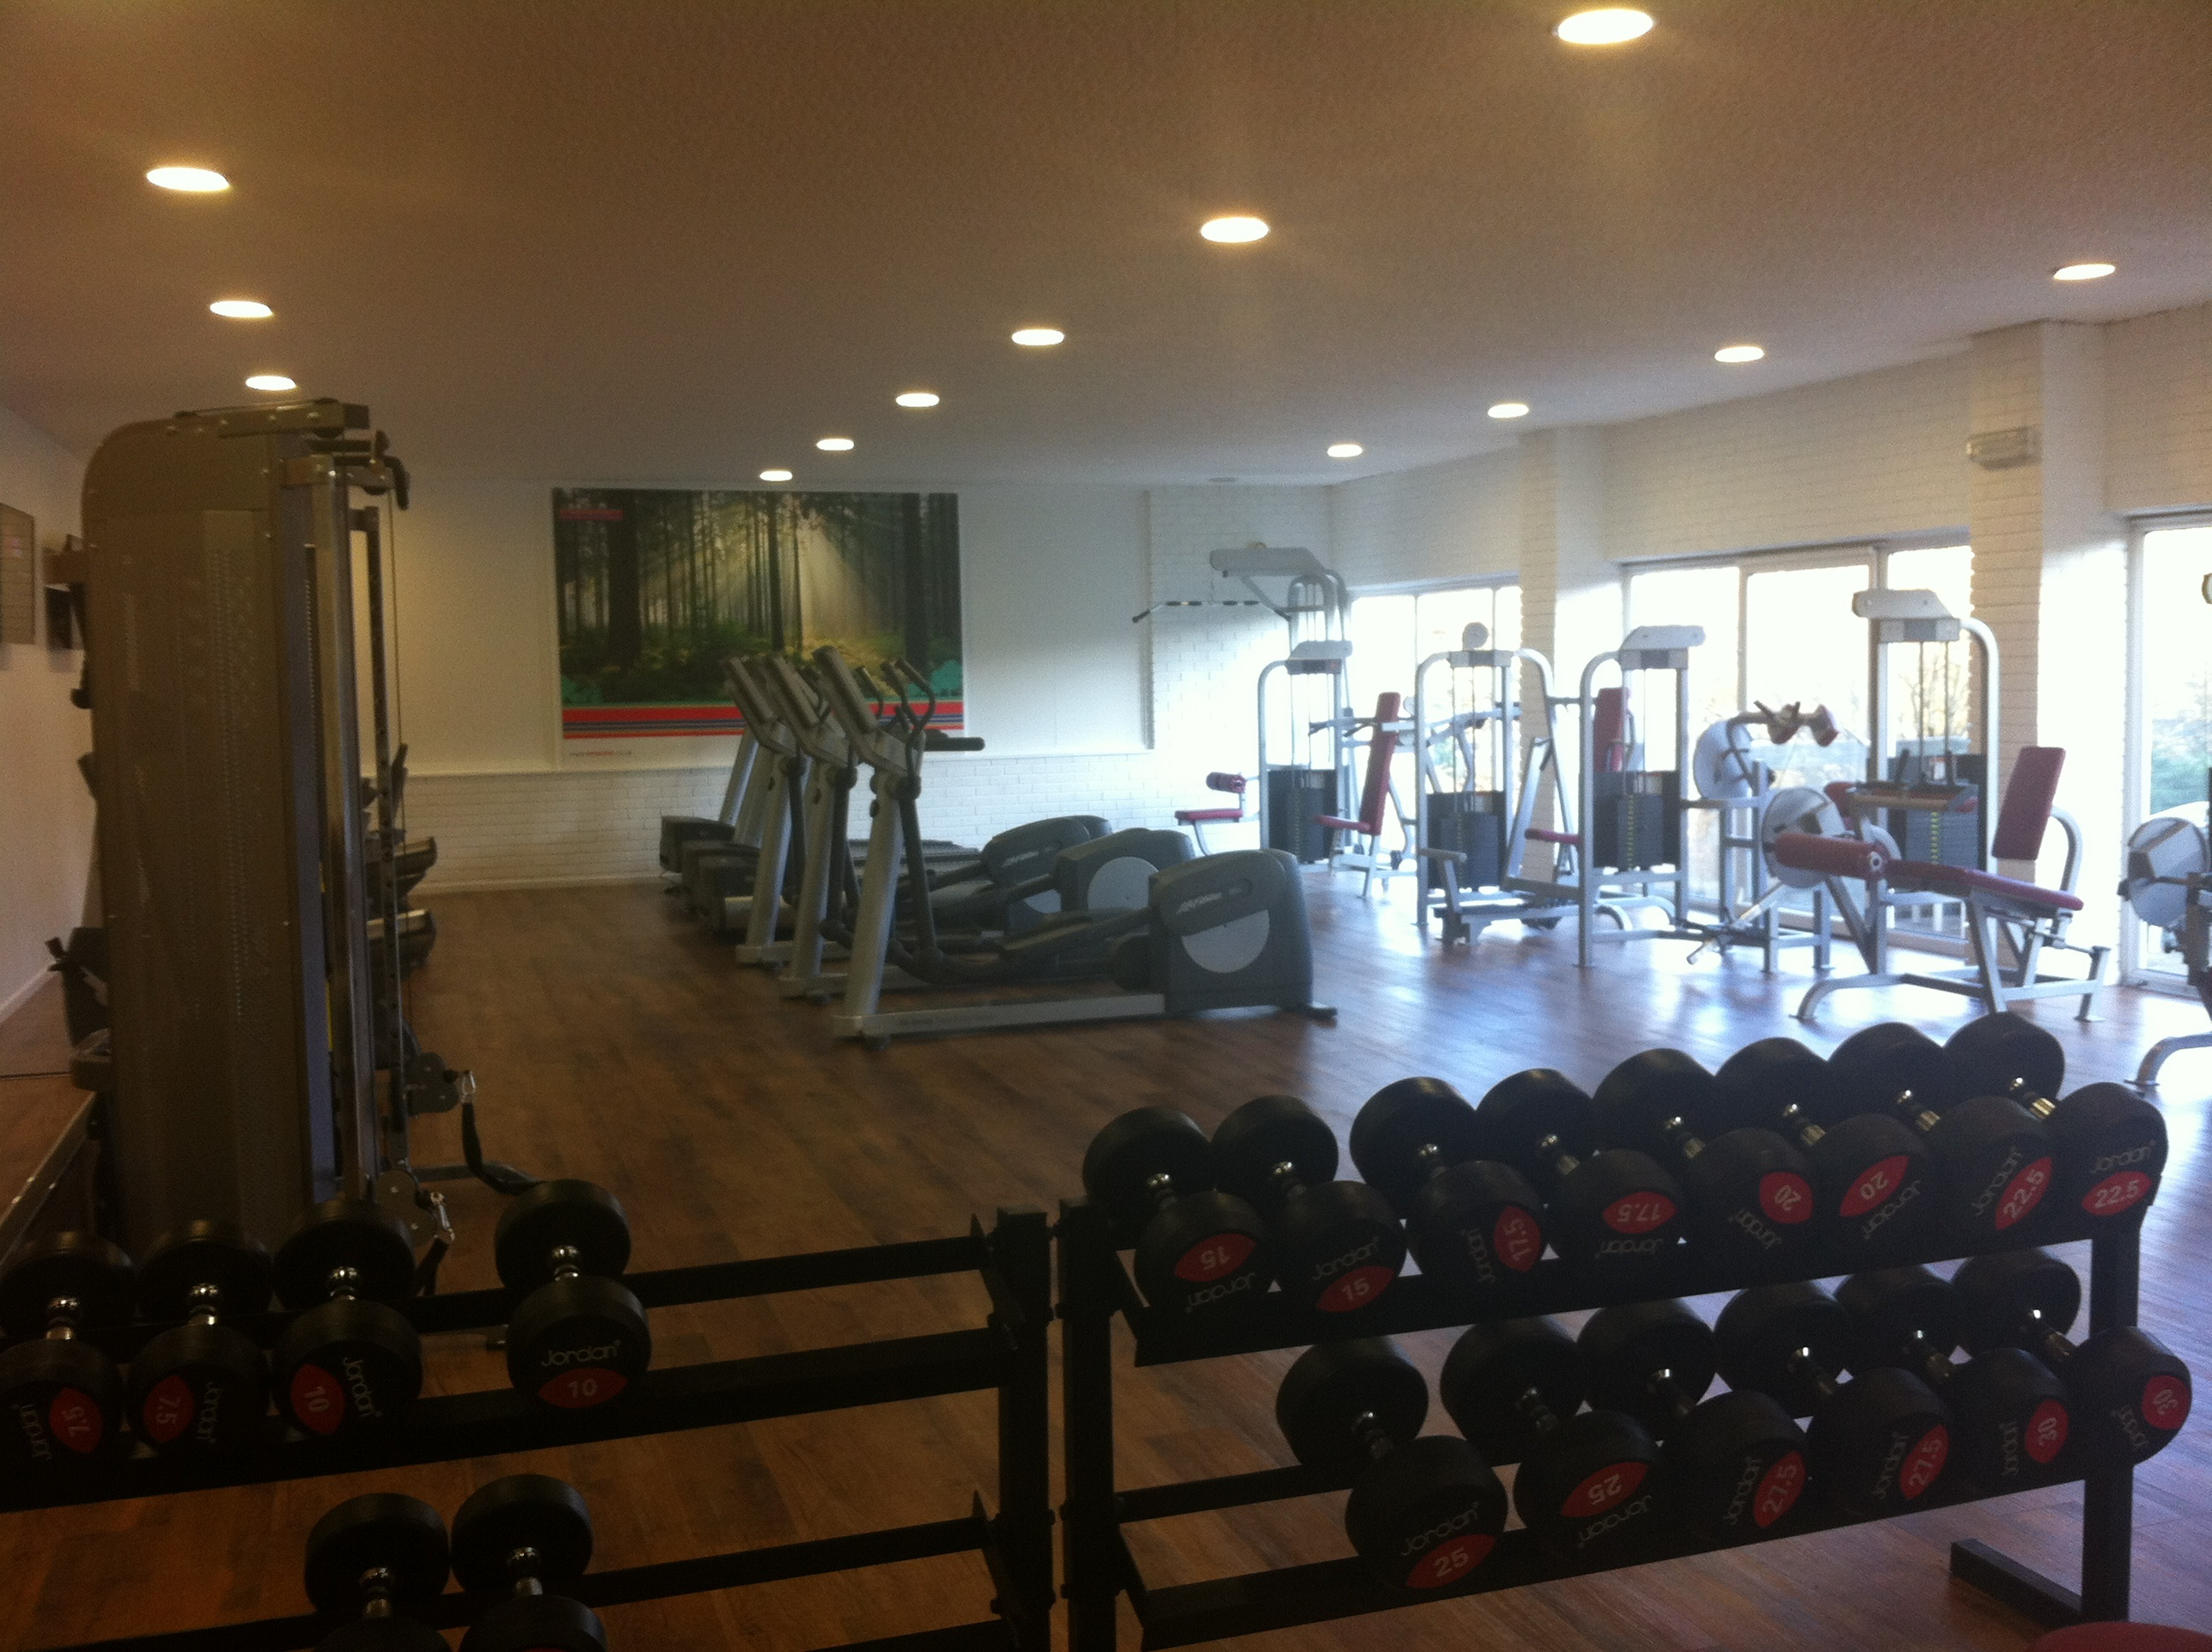 The gym will offer the local community access to affordable fitness and a healthy lifestyle